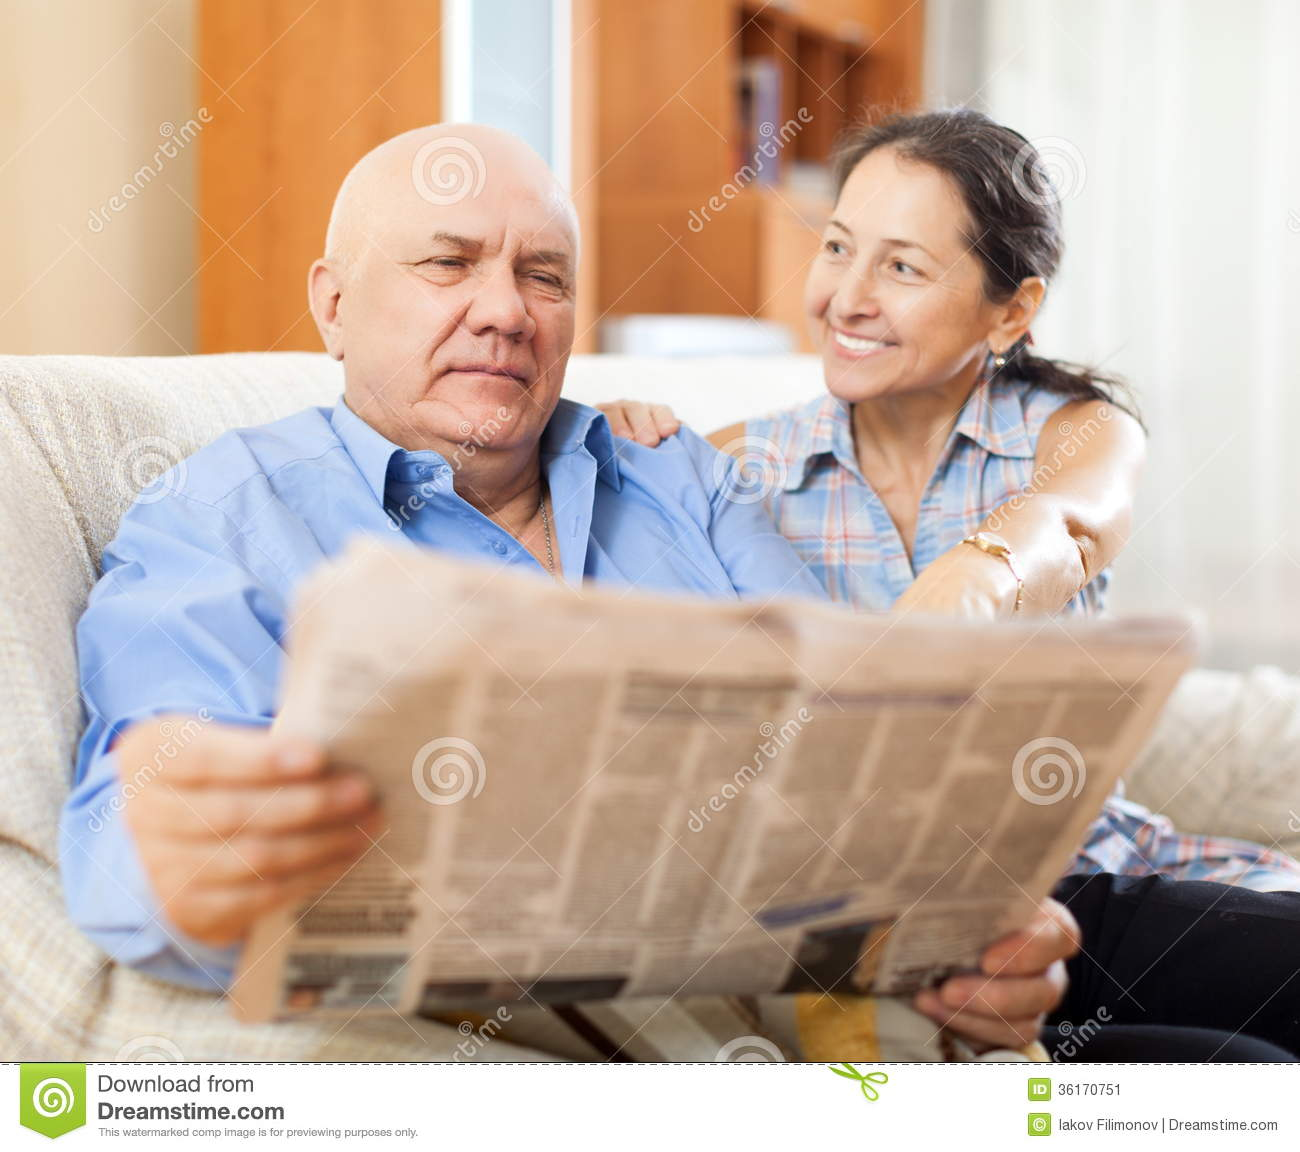 Portrait of laughing mature woman and elderly man with newspaper